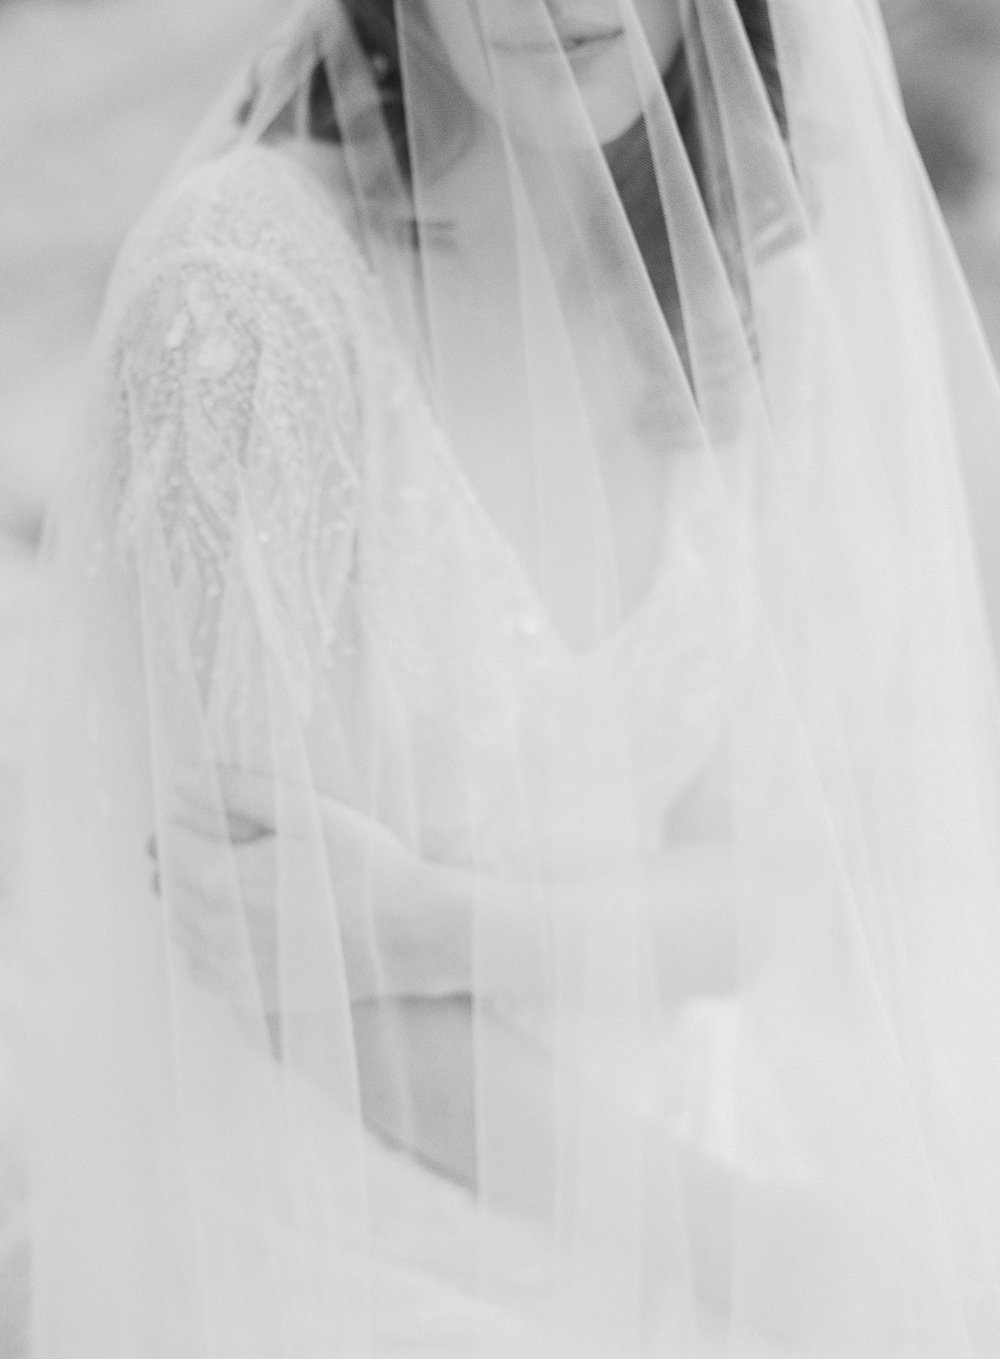 Colorado winter bride